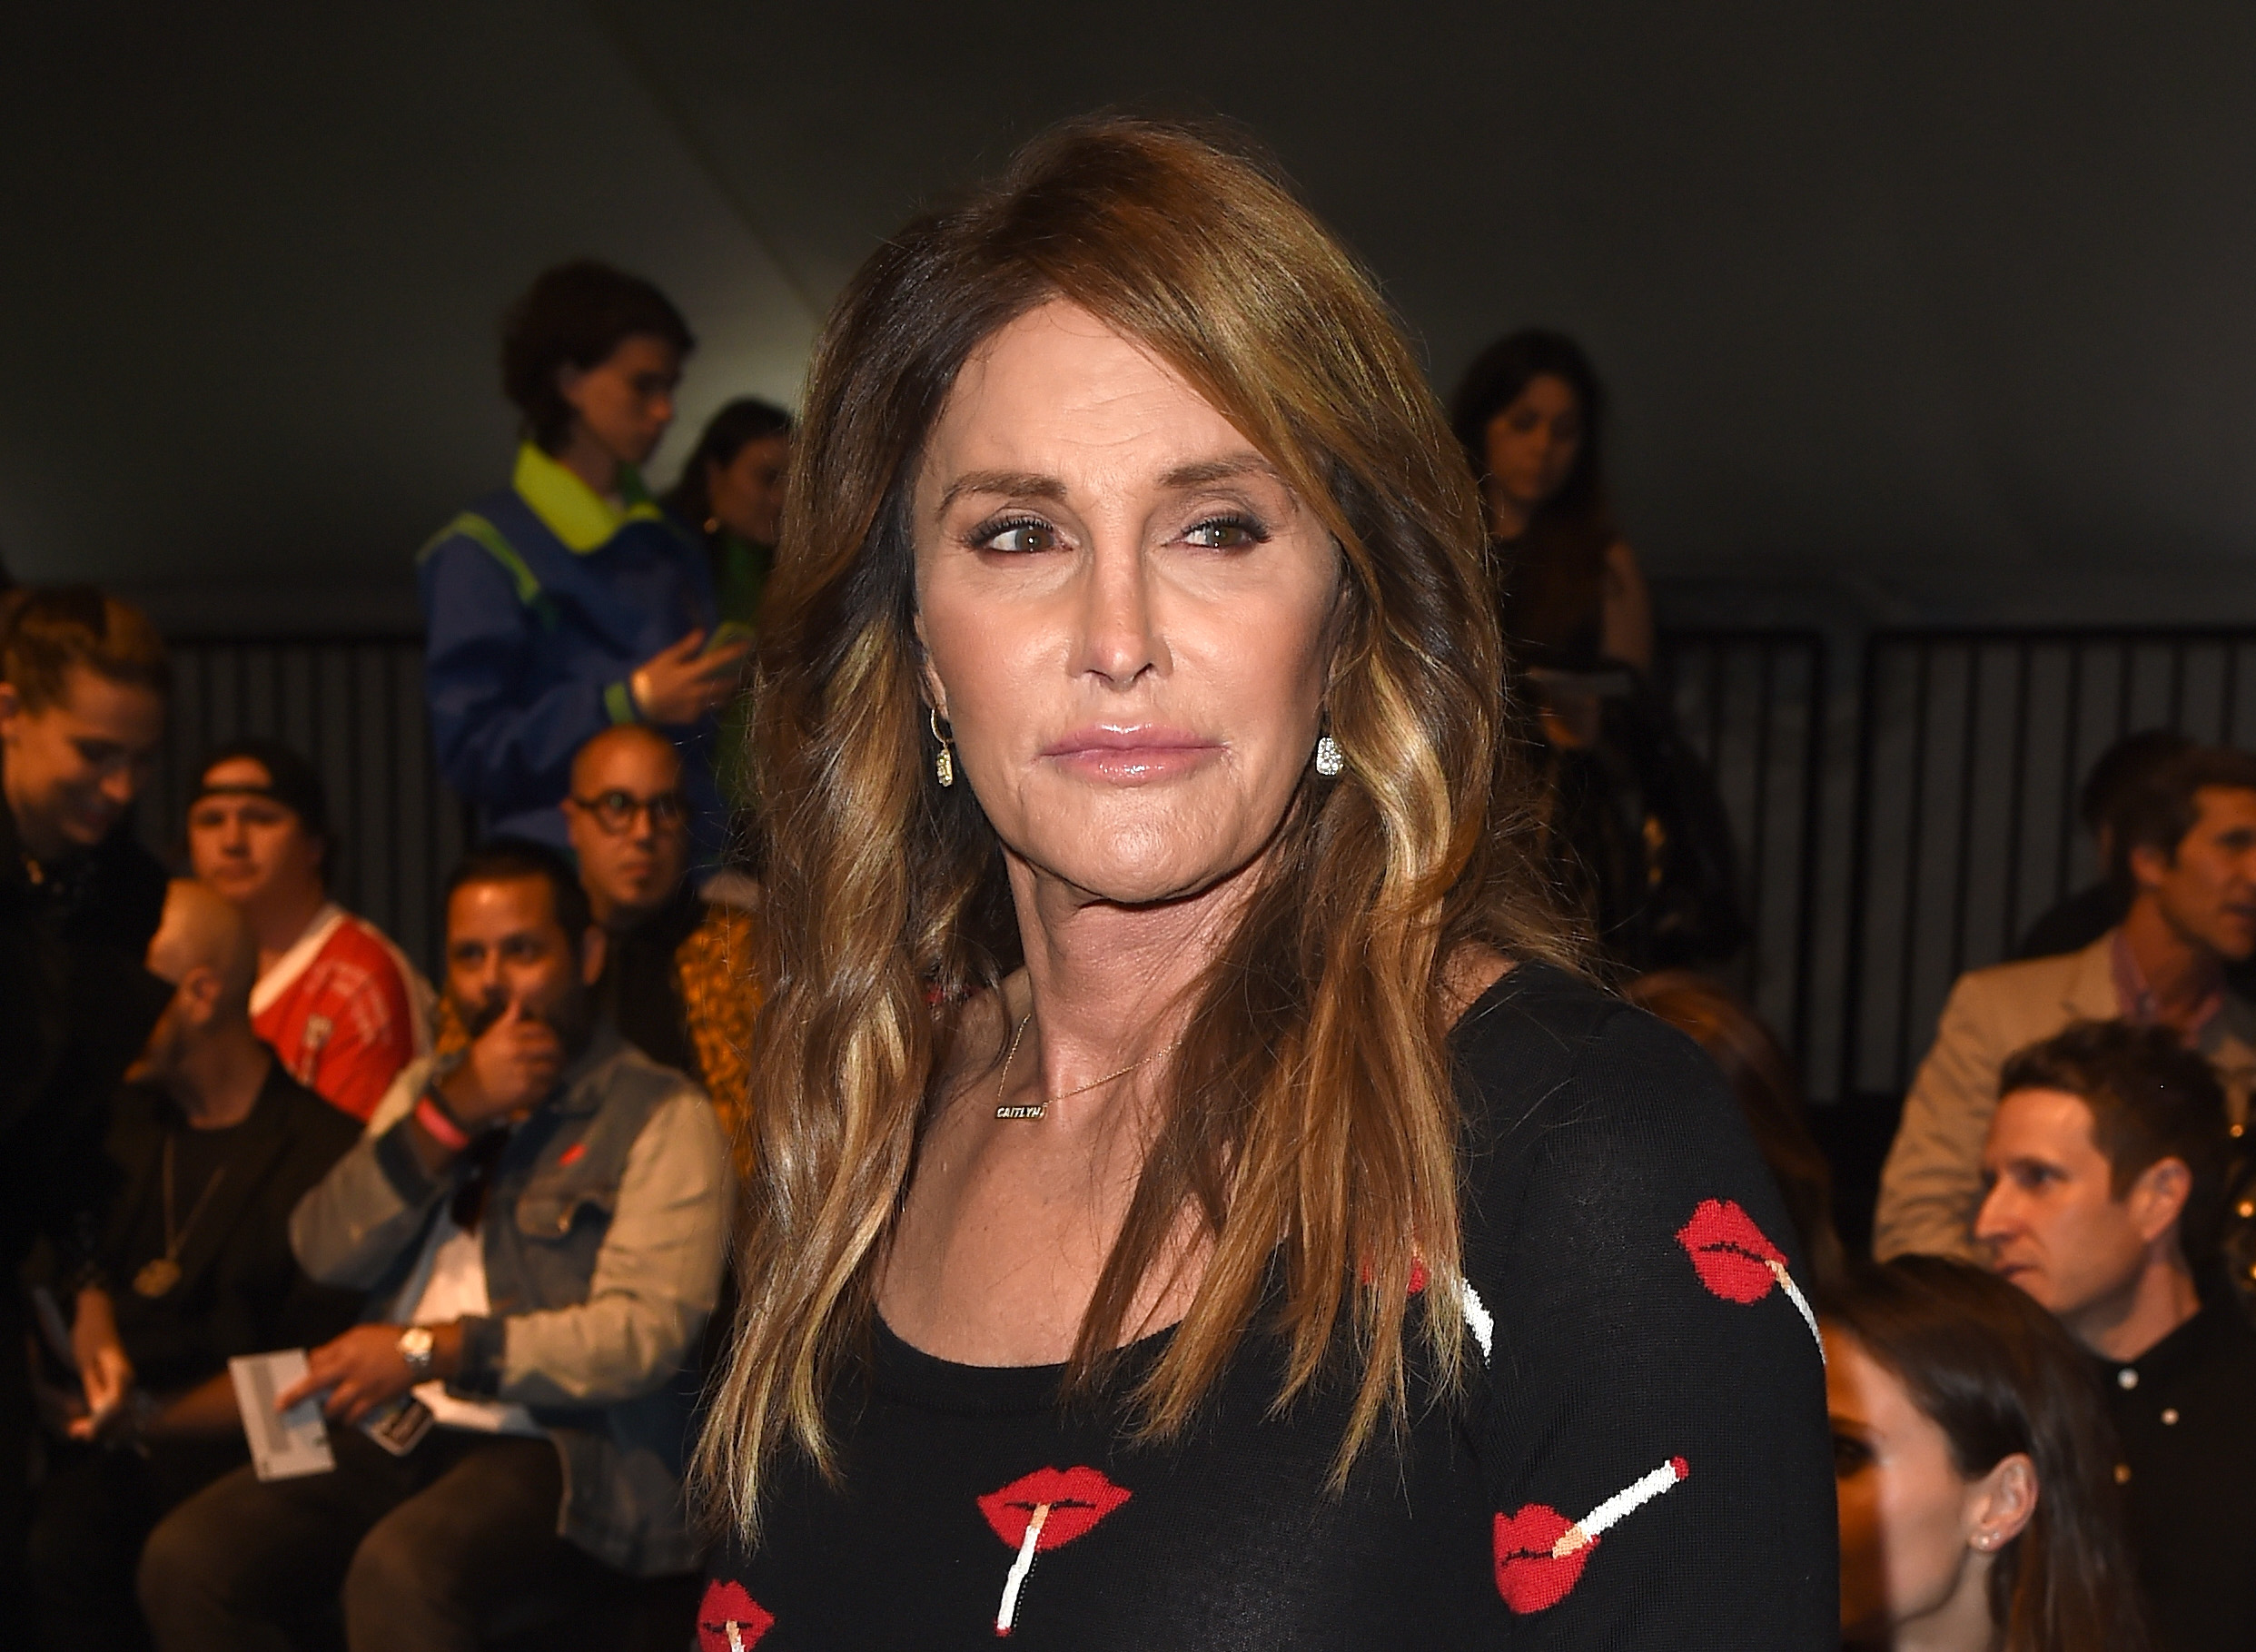 Caitlyn Jenner attends the Moschino Spring/Summer 17 Menswear and Women's Resort Collection during MADE LA at L.A. Live Event Deck on June 10, 2016 in Los Angeles, California.  (Photo by Kevin Winter/Getty Images)